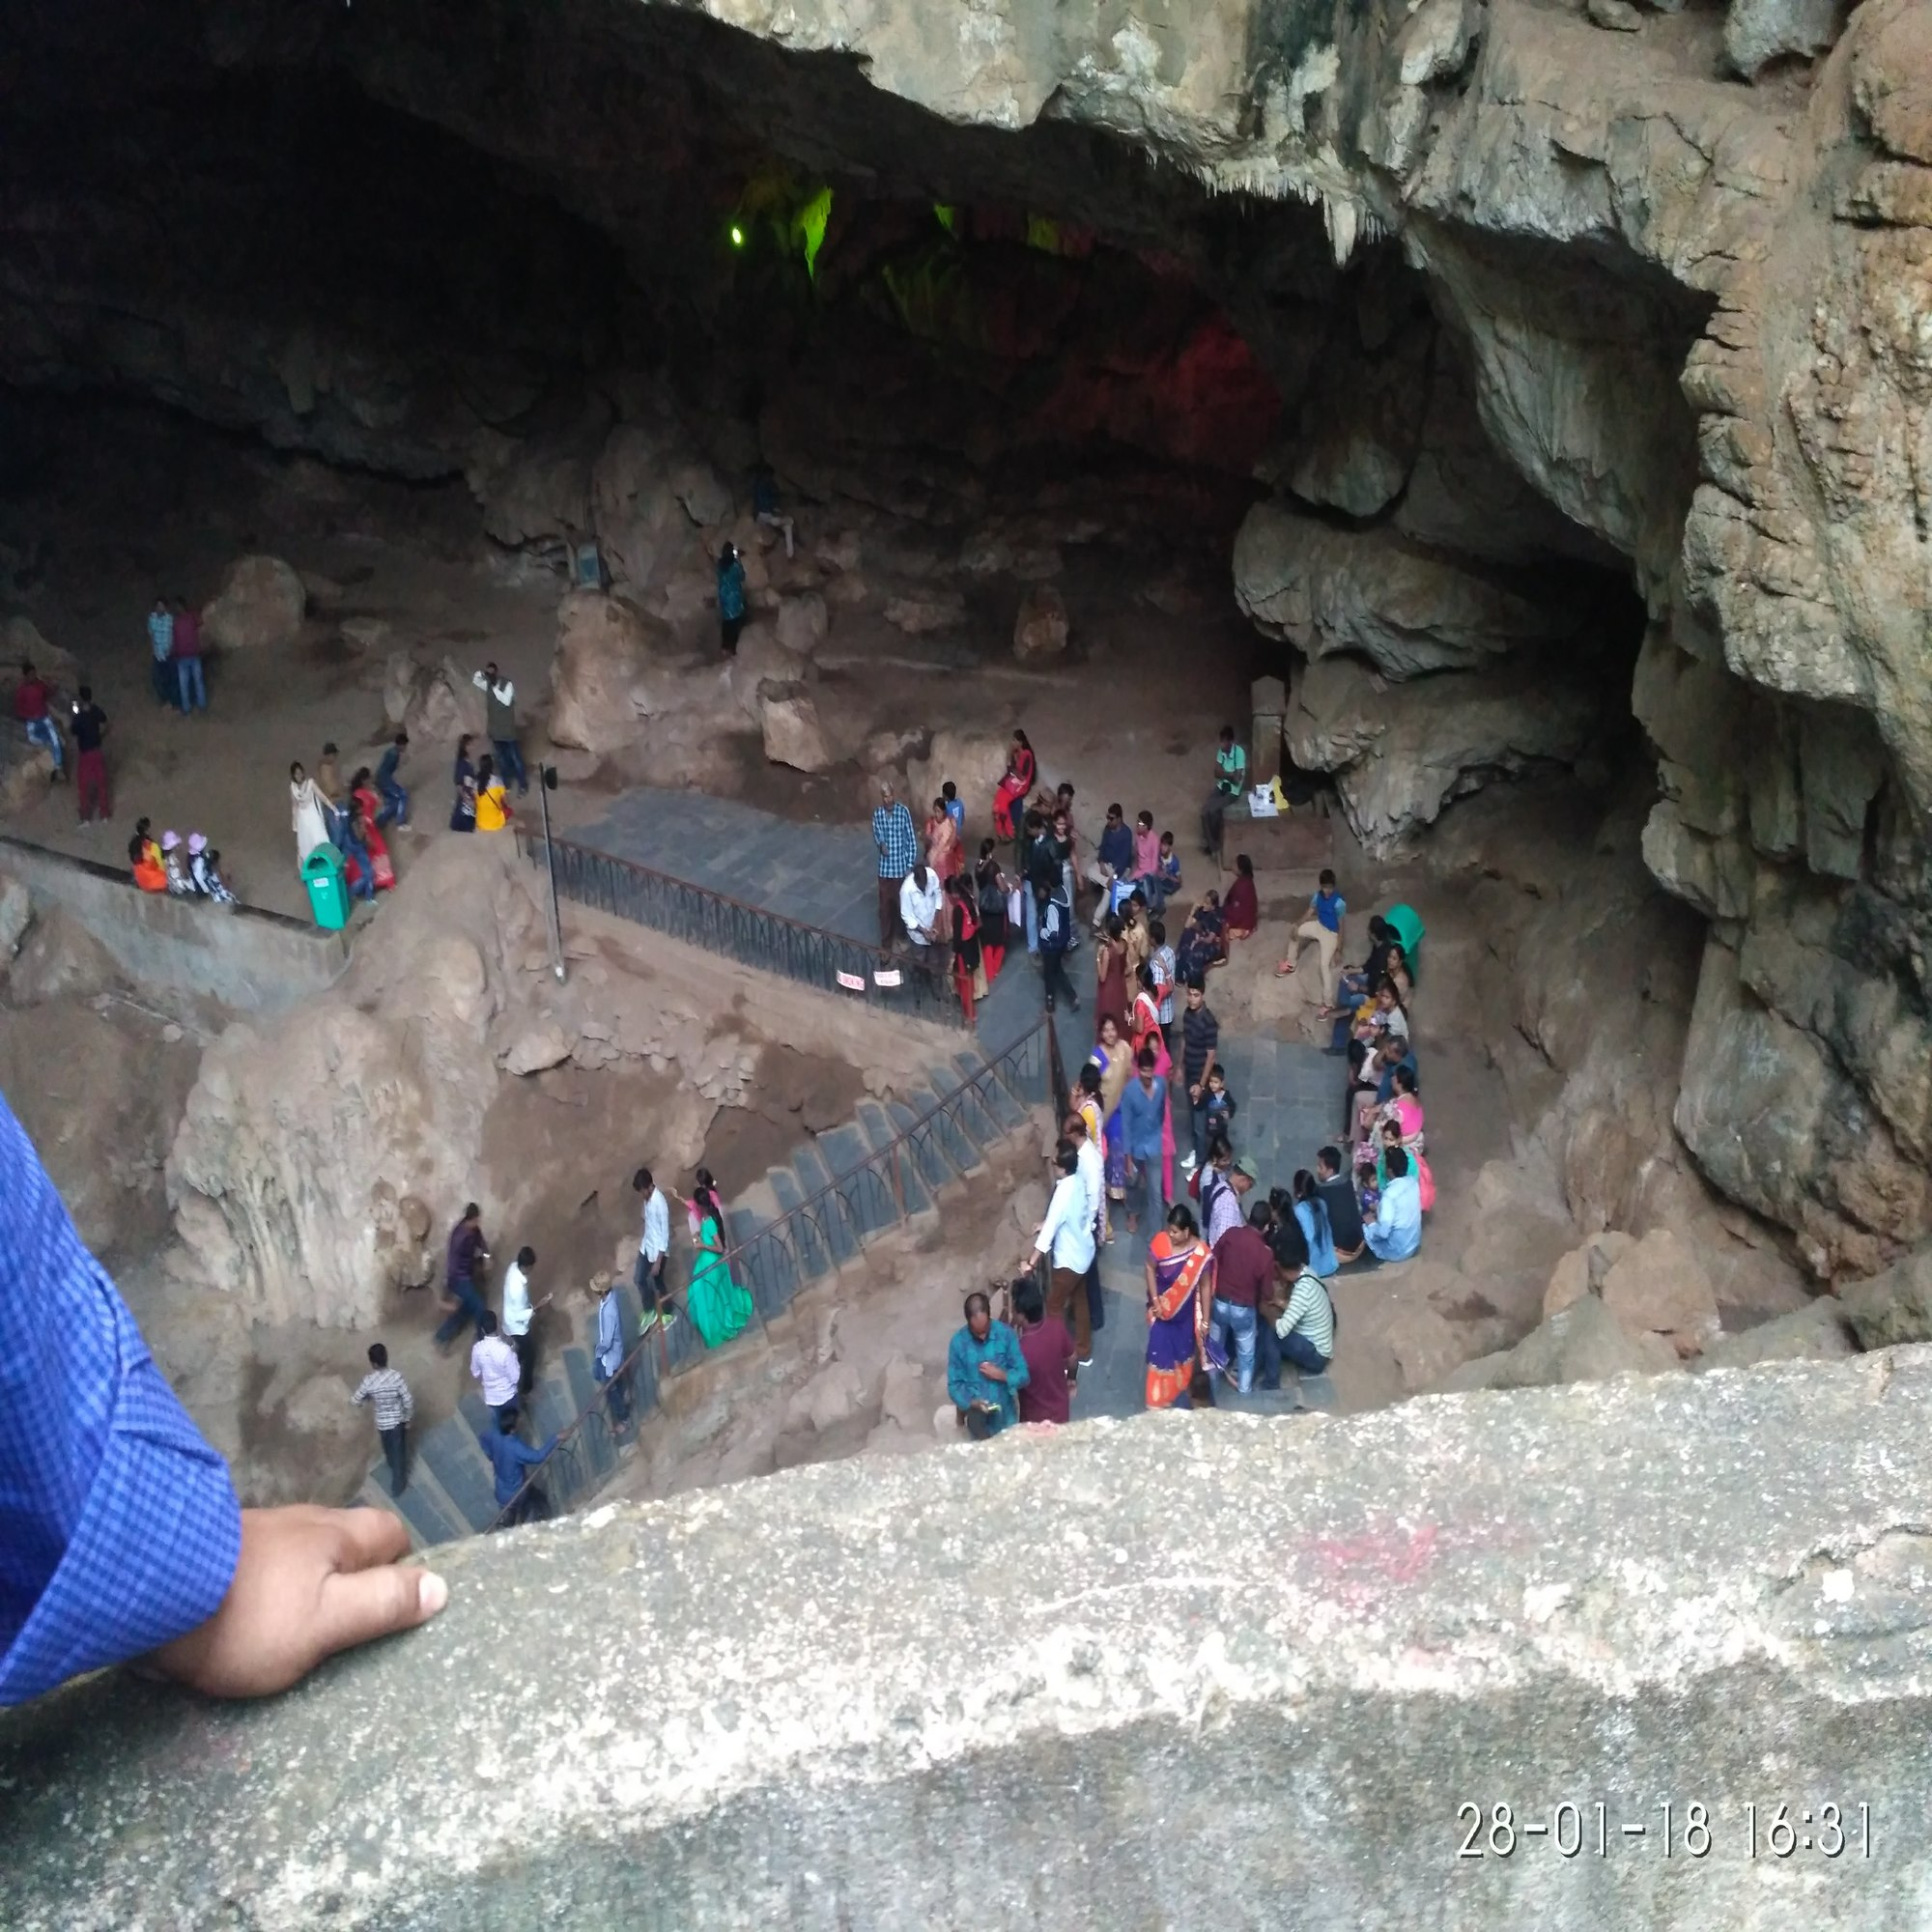 This Roads sometimes leads to downward in the boracaves and sometimes upward. amazing travel inside the boracaves